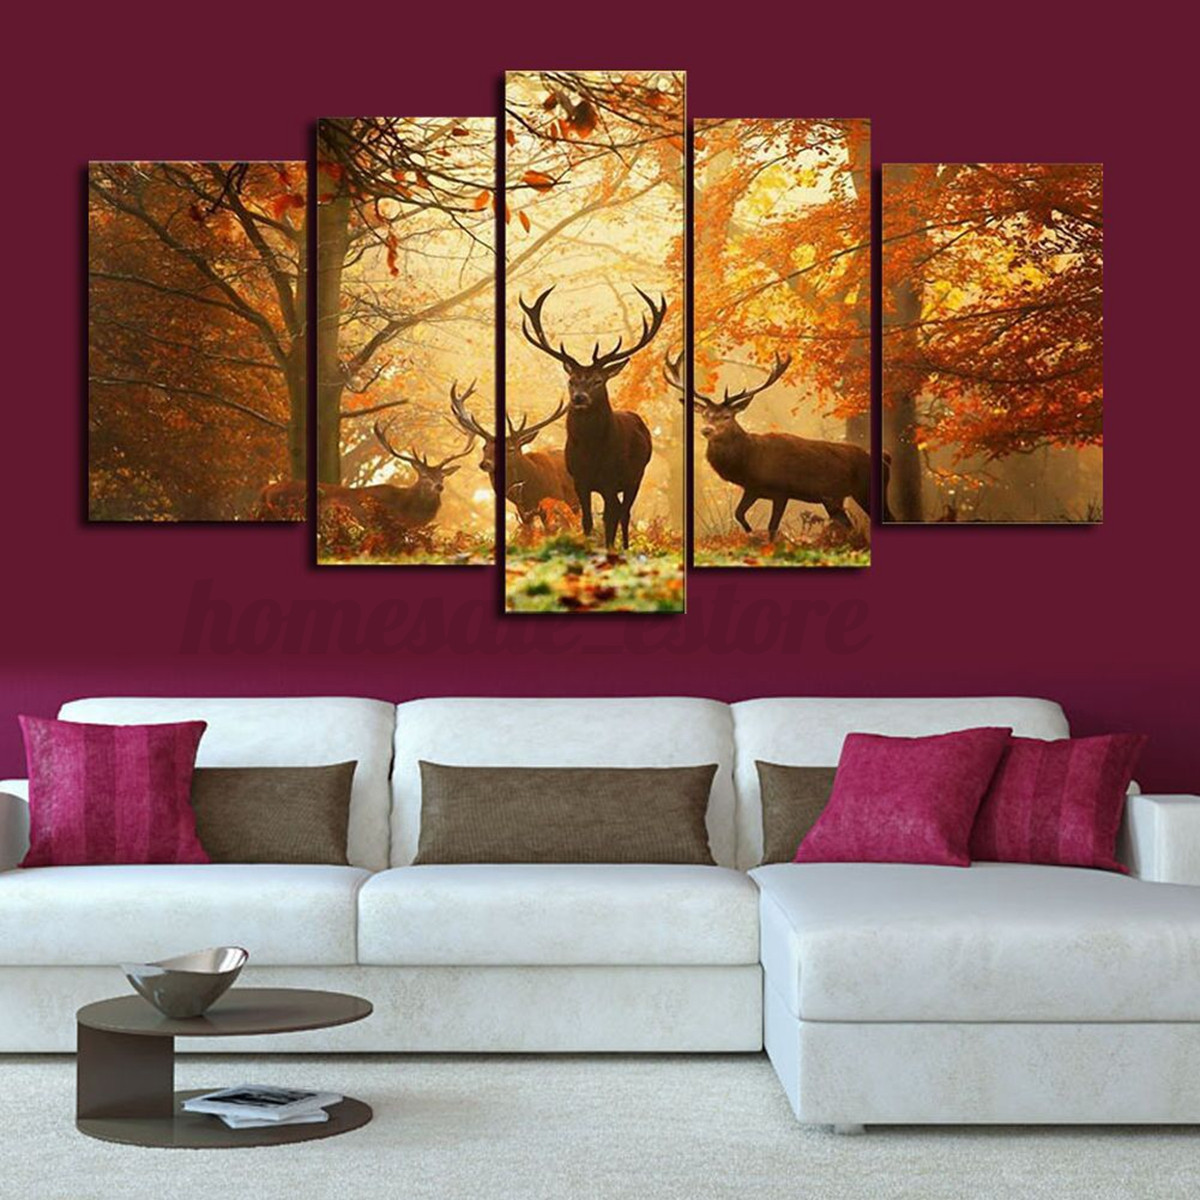 HD Canvas Print Modern Scenery Animal Wall Art Oil Painting Home Decor Unframed  eBay